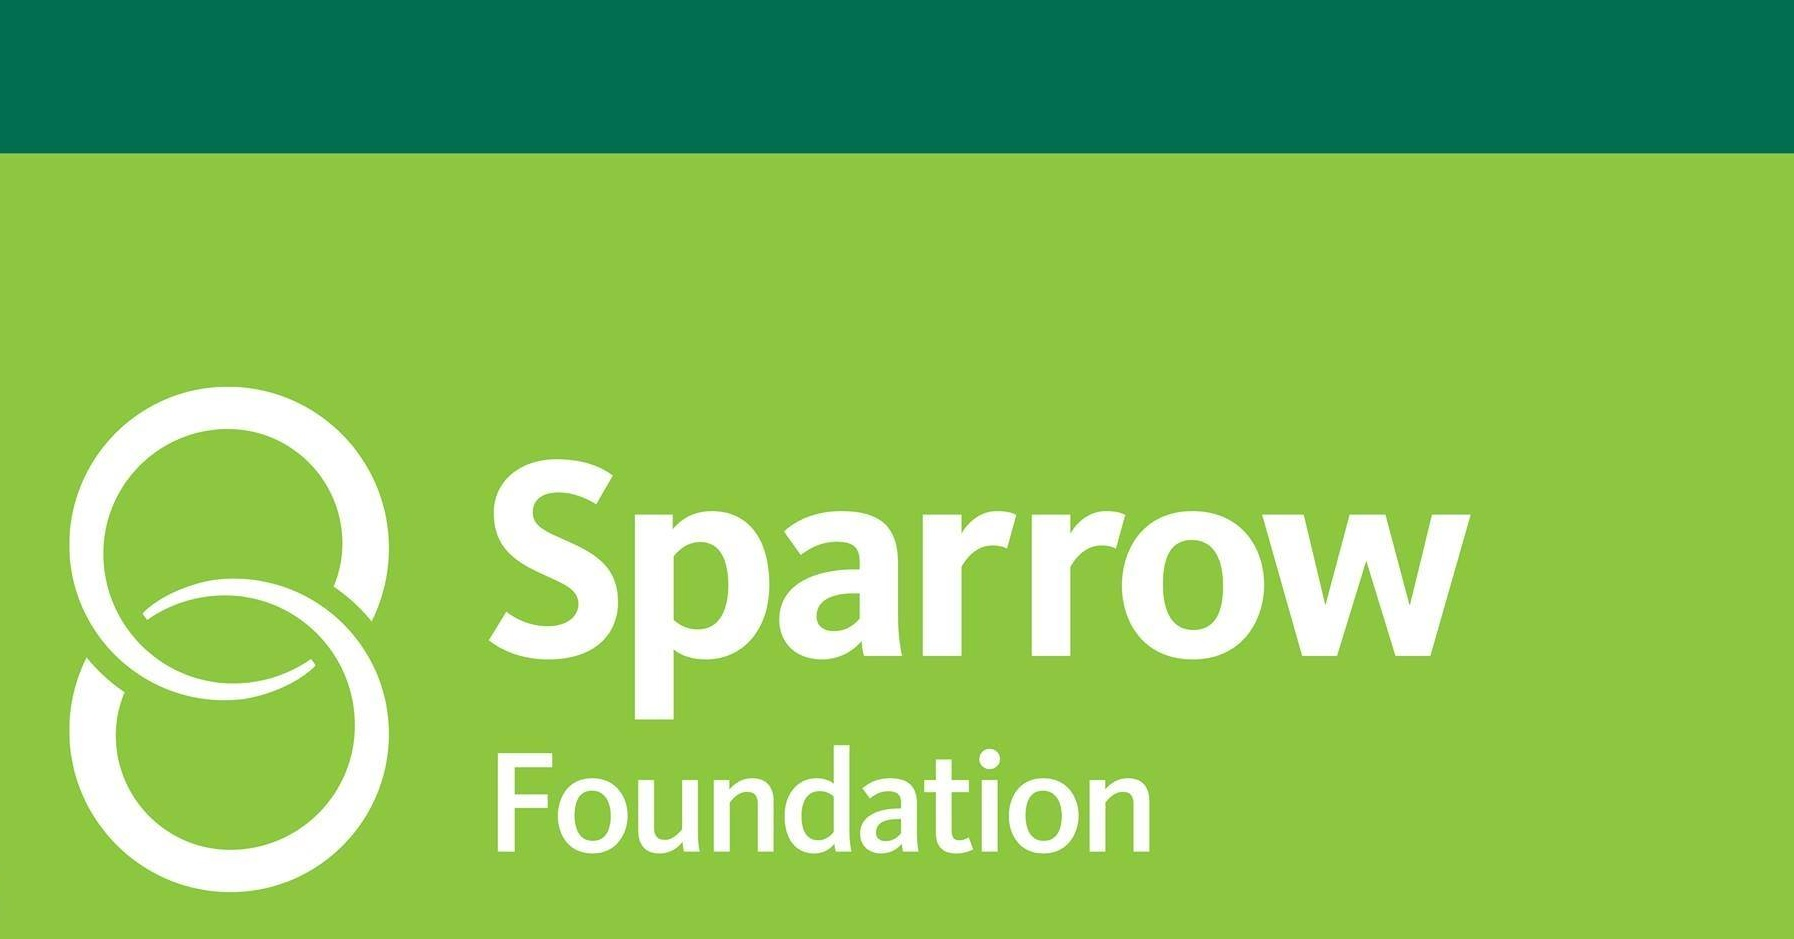 Sparrow Foundation Cropped